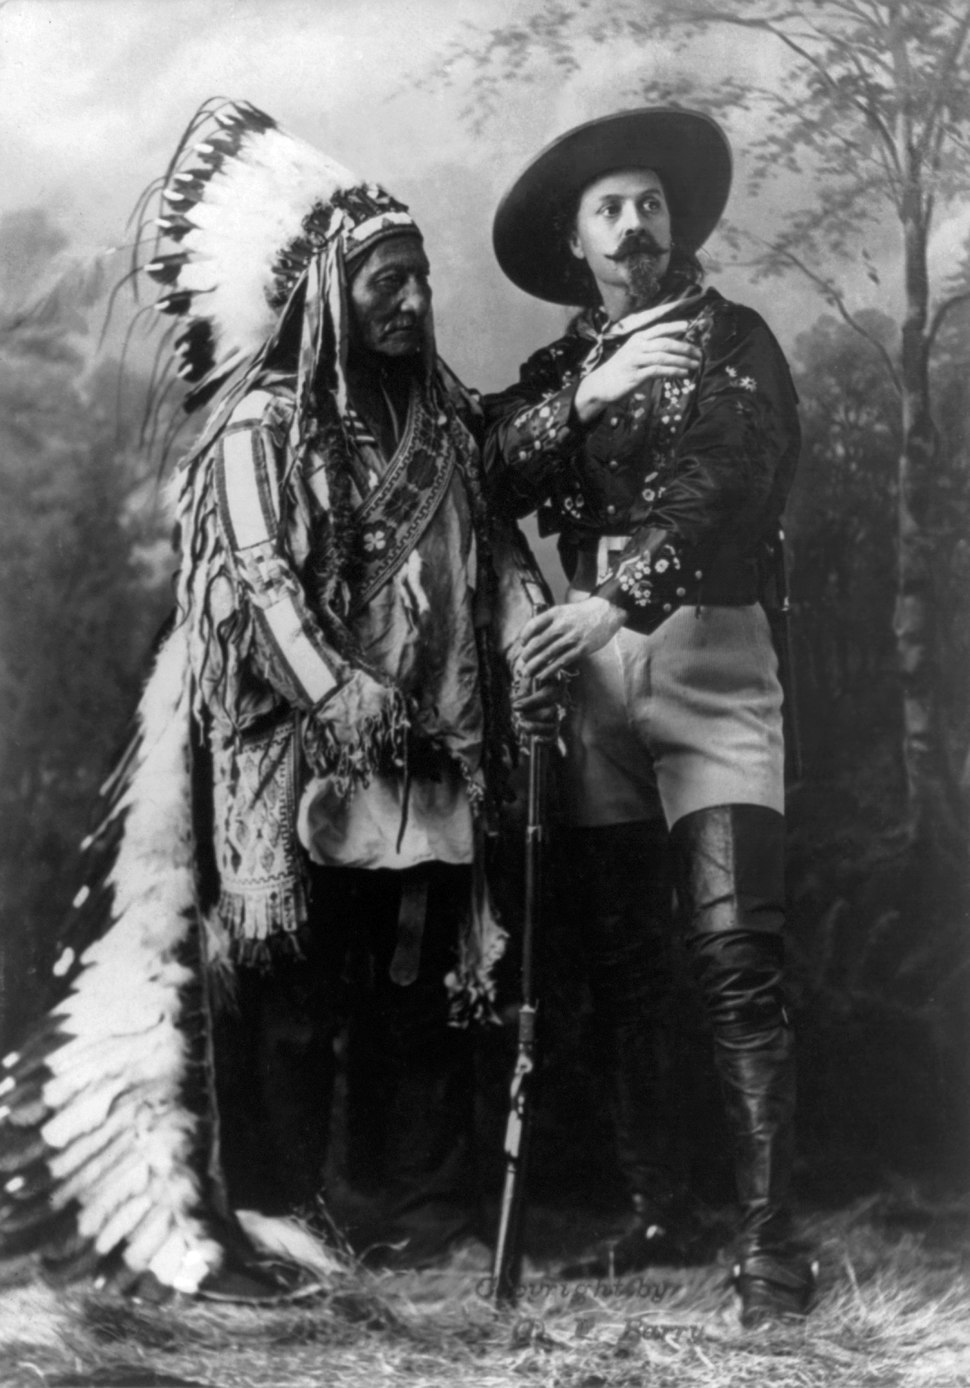 William Notman studios - Sitting Bull and Buffalo Bill (1895) edit